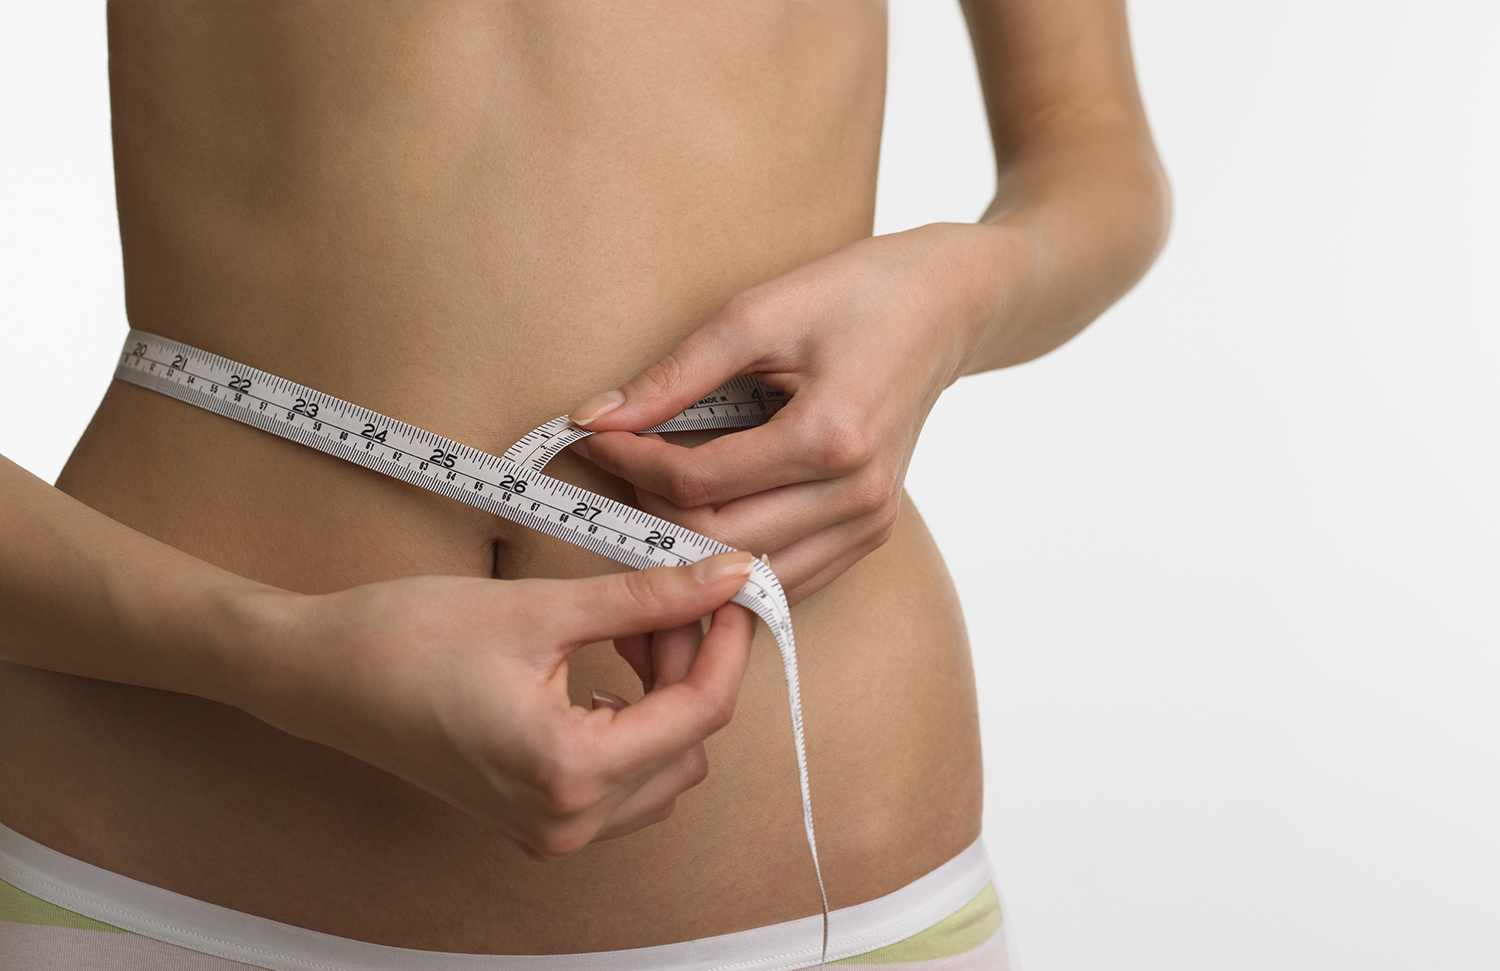 Free stock photo Woman measuring her waist line